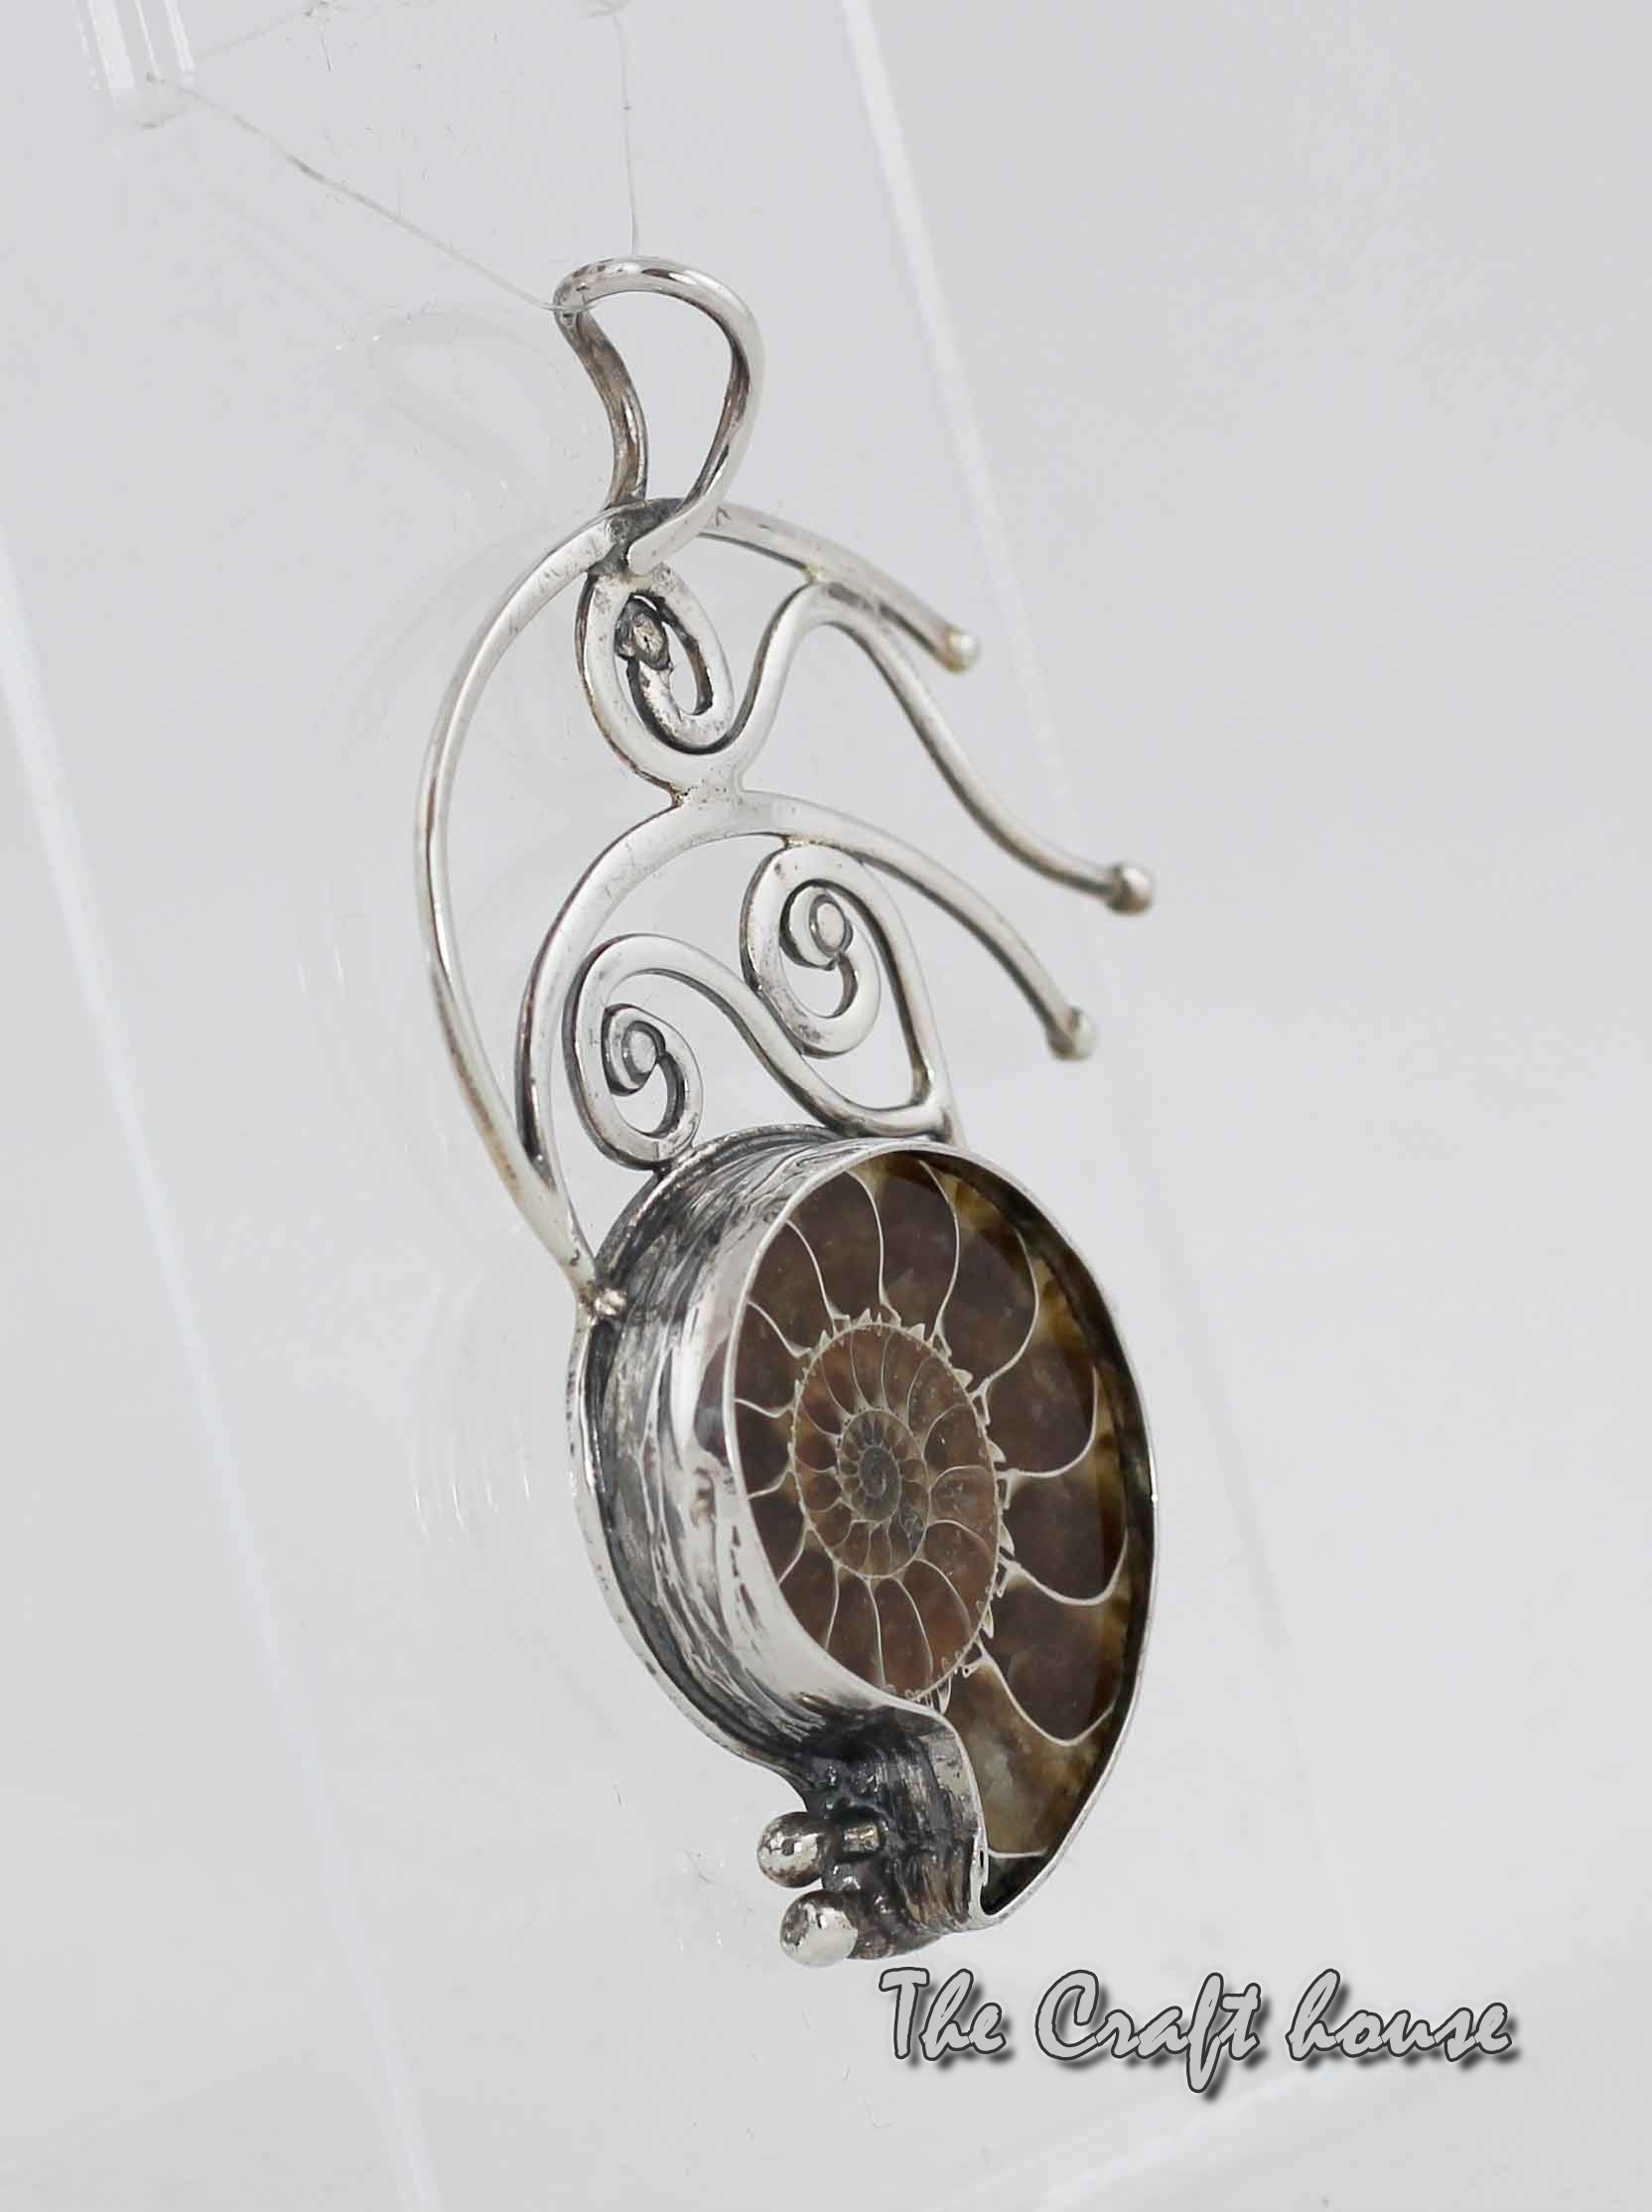 Silver pendant with Ammonite fossil